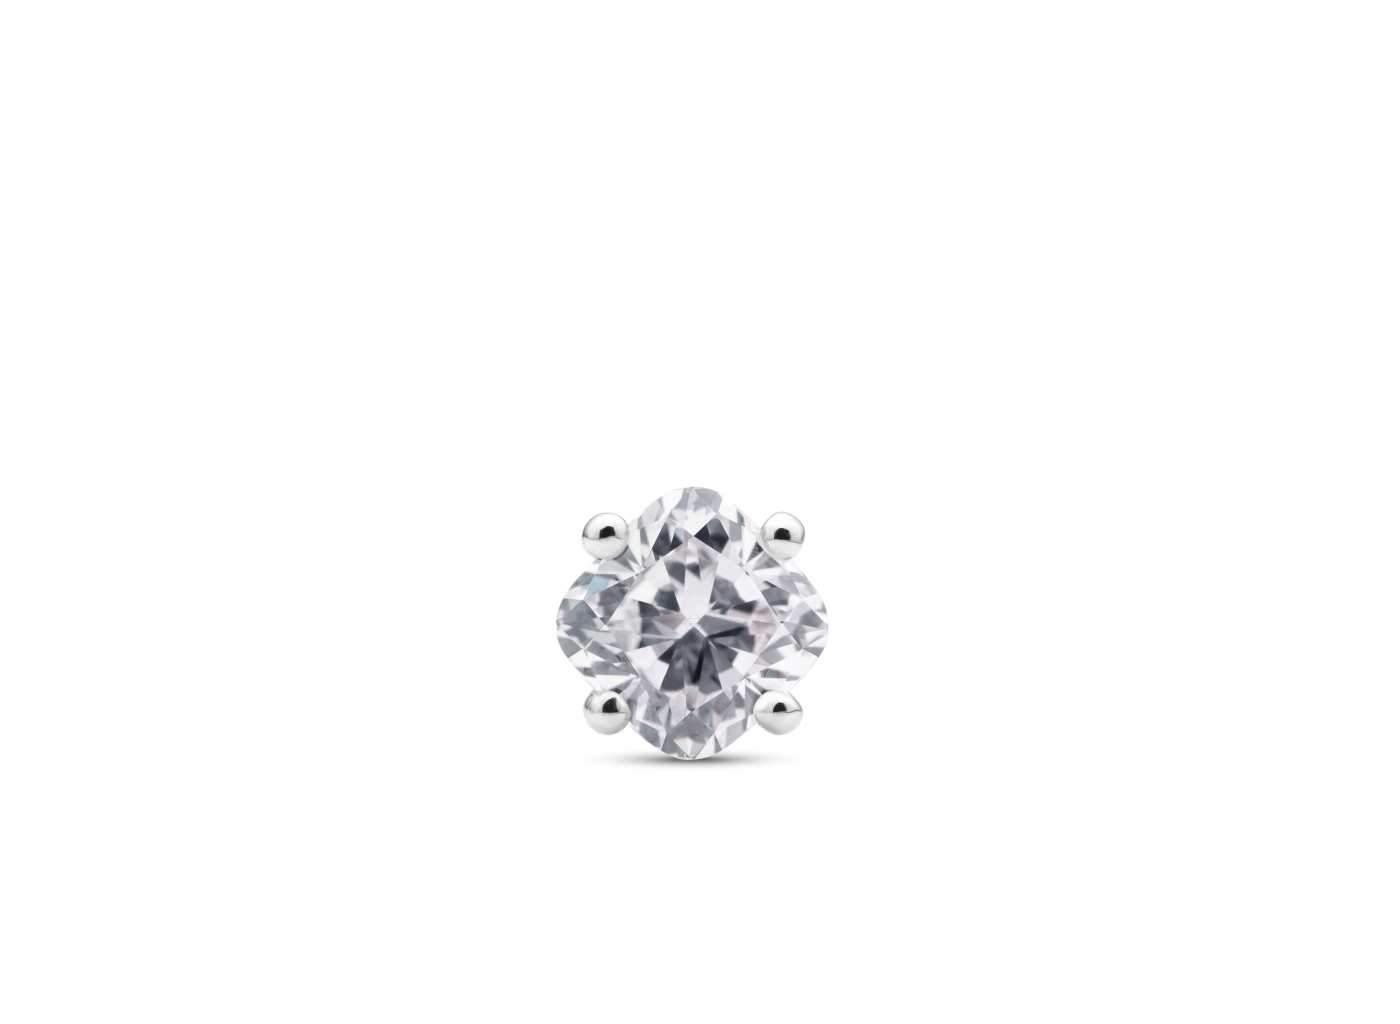 Front view of Cushion 3/4 carat stud with white diamond